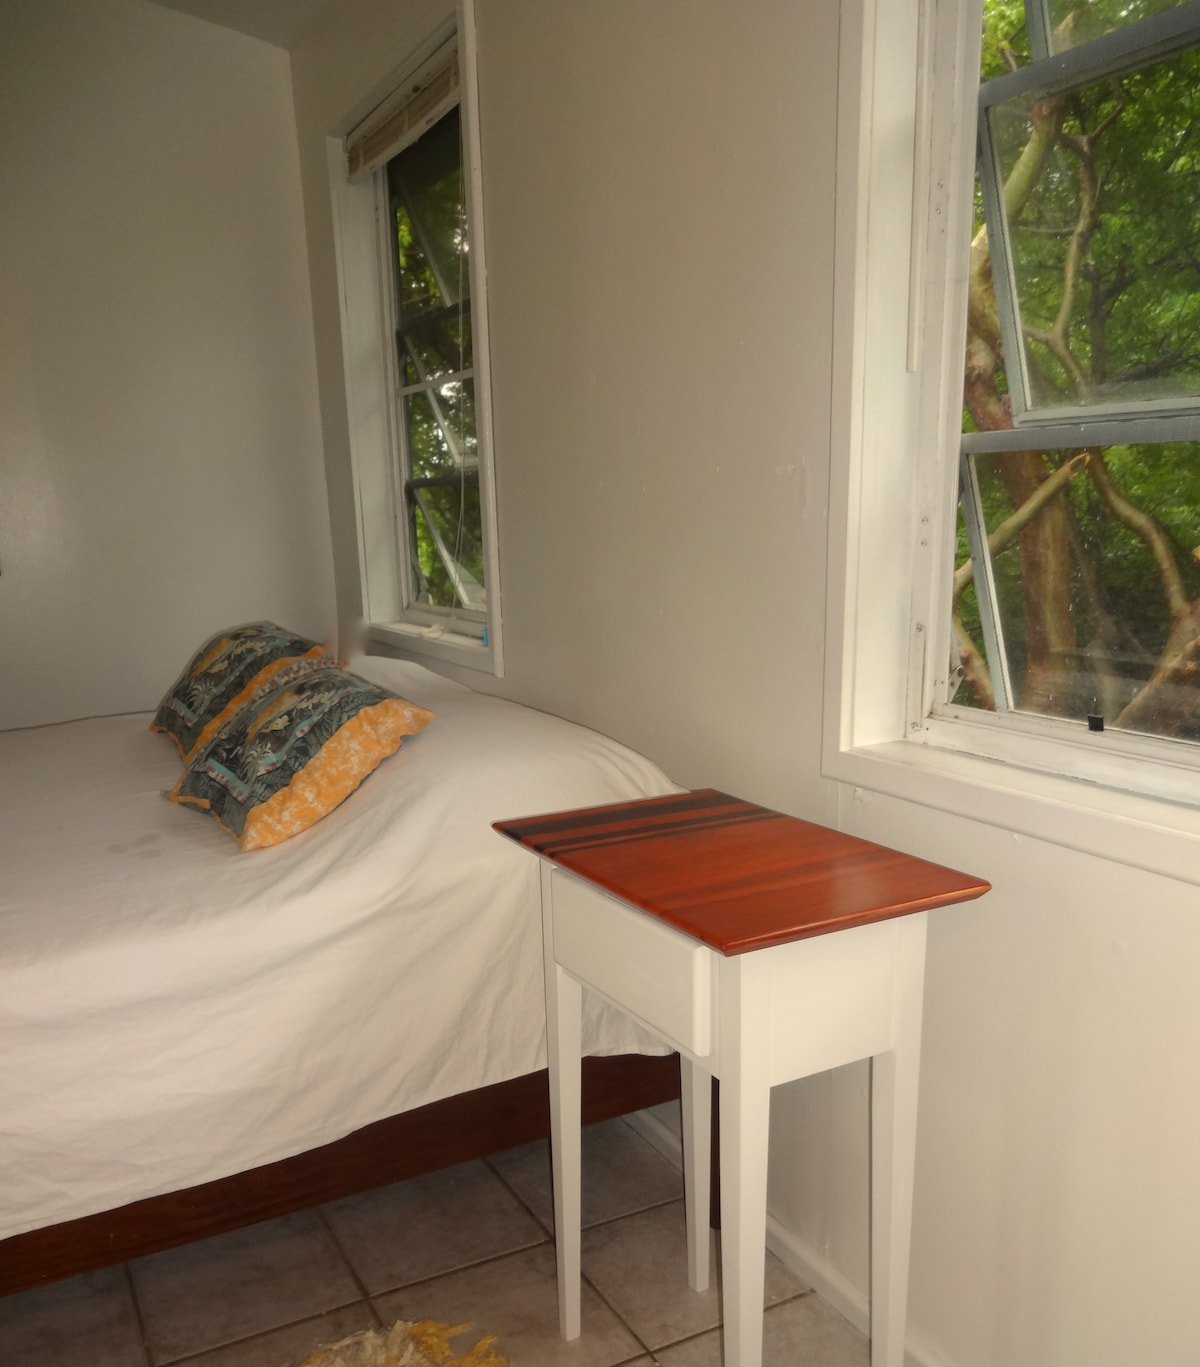 Great sheets, furniture made on site, a serene view of the trees.